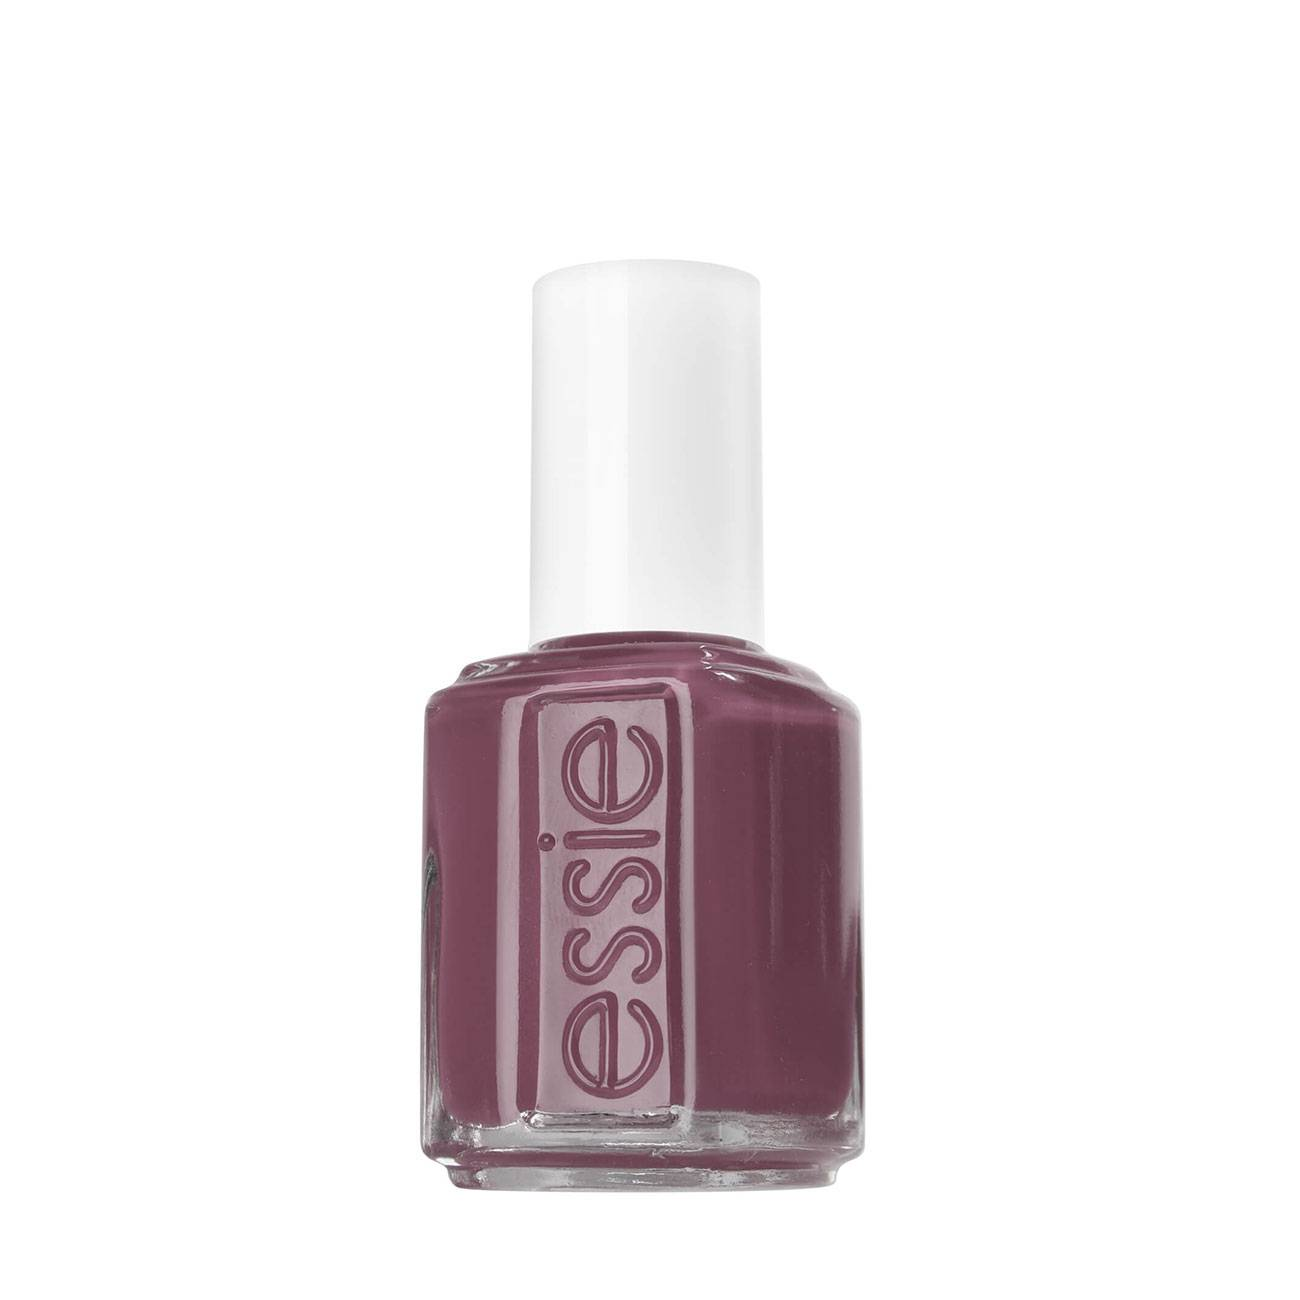 Nail Polish N°42 13.5ml Essie imagine 2021 bestvalue.eu